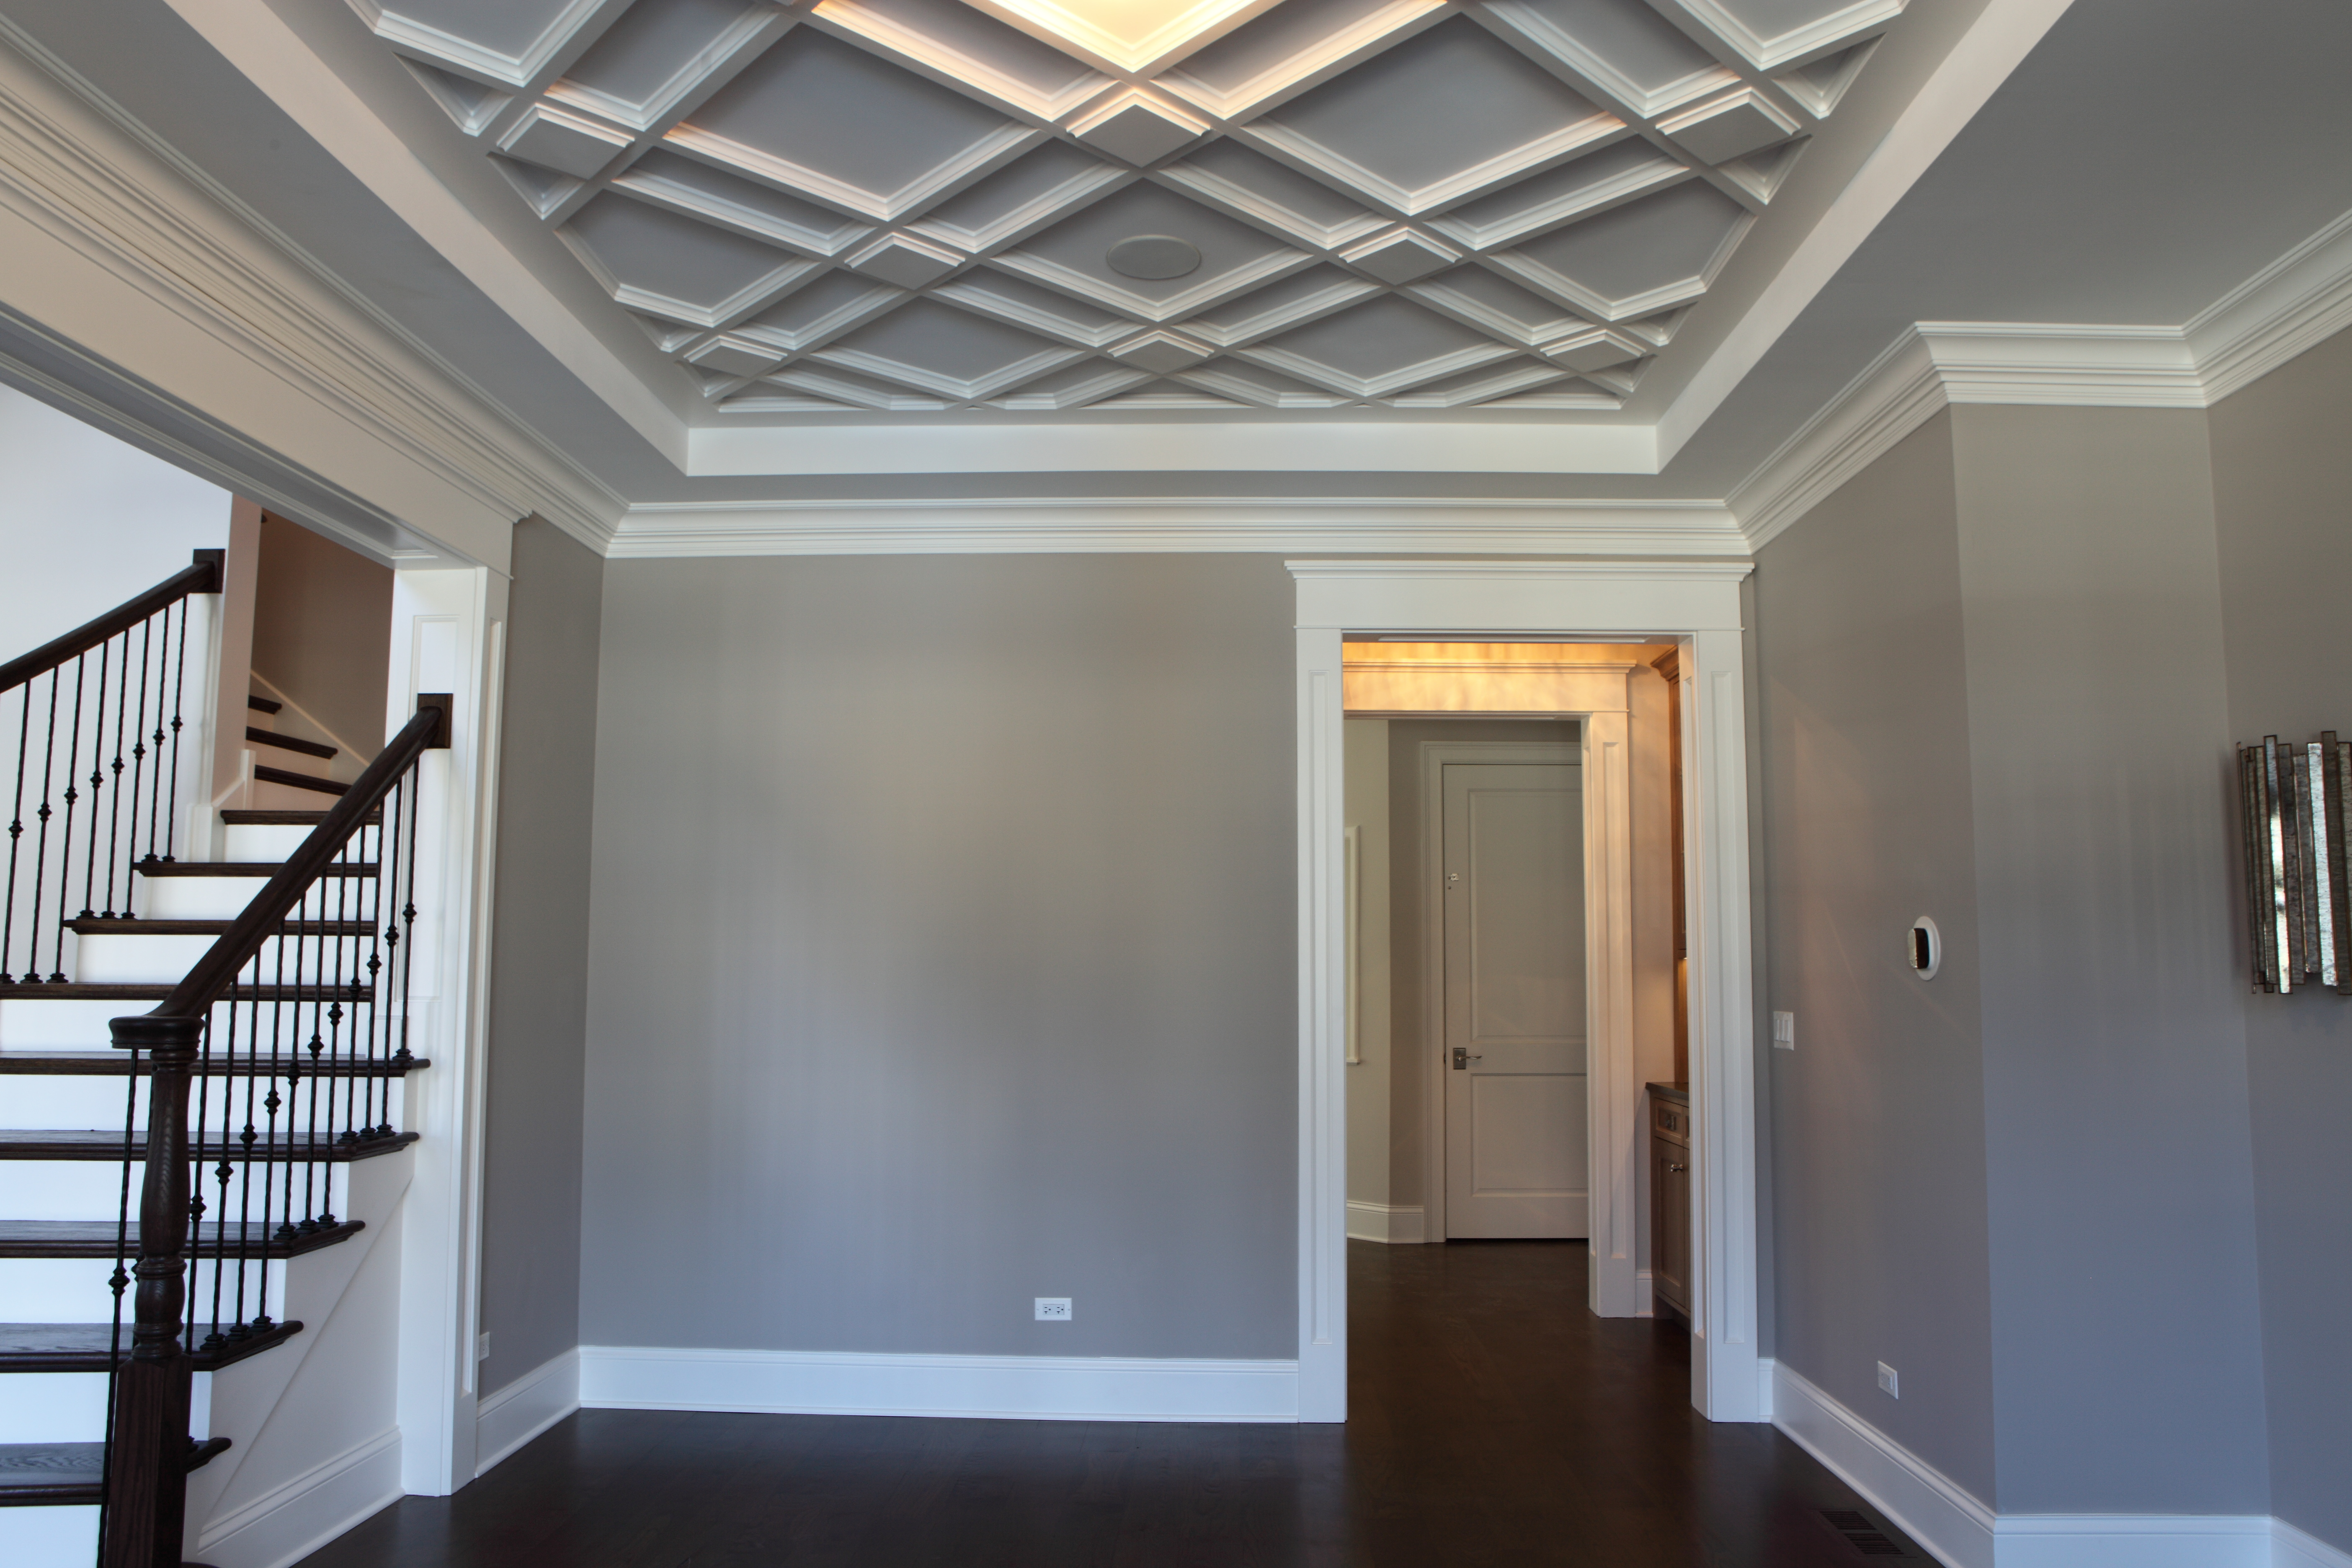 311 Princeton Interior Living Room Ceiling Detail